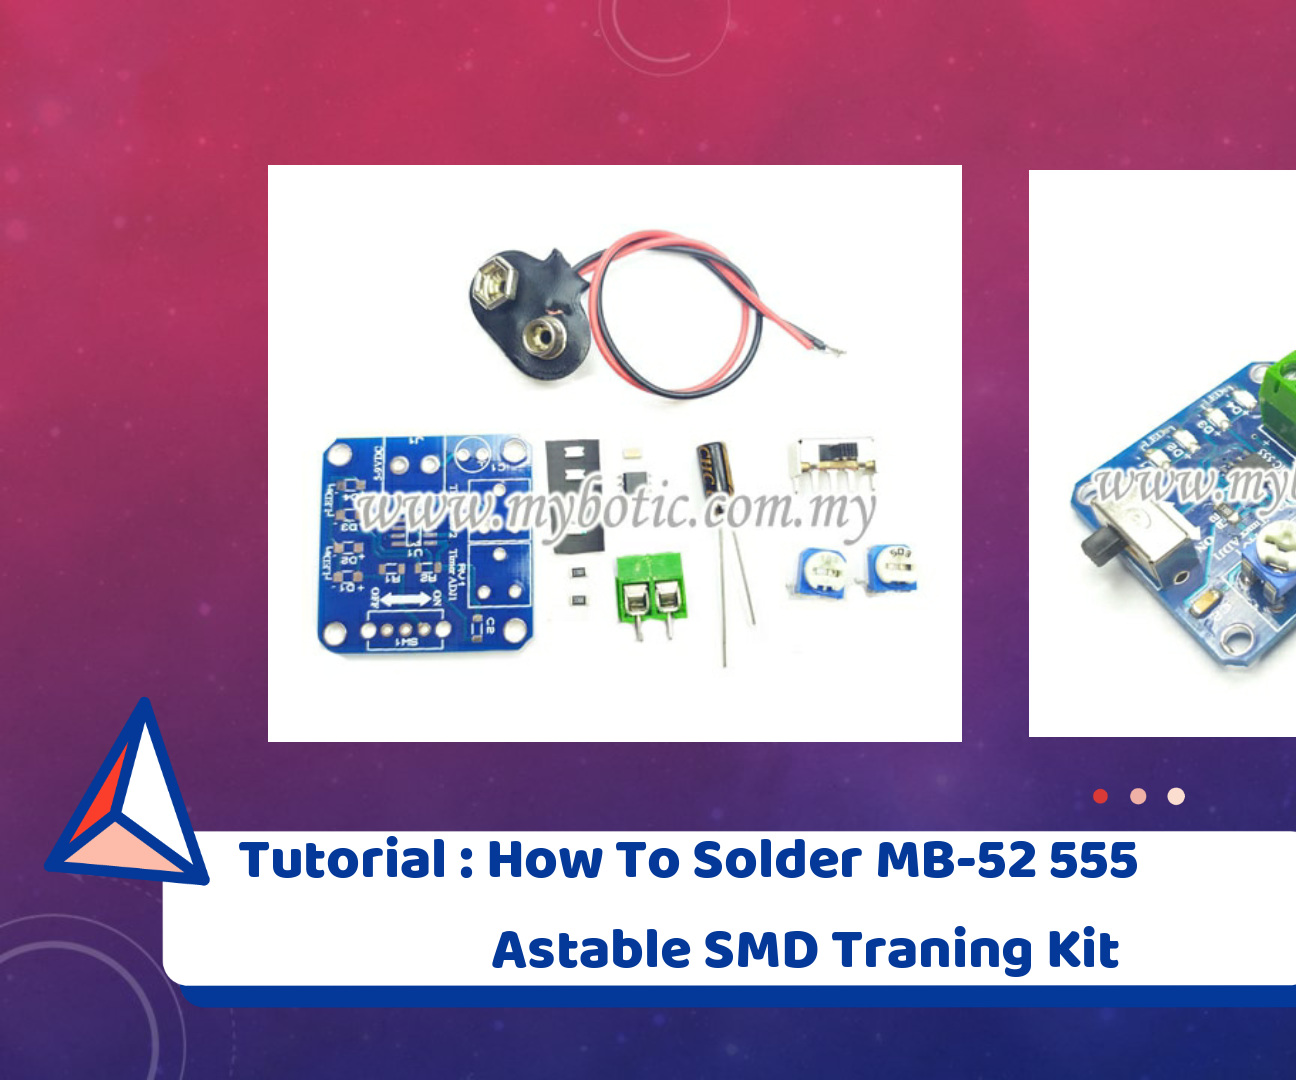 Tutorial: How to Solder SMD or Surface Mount Components (MB-52 555 Astable SMD Training Kit)